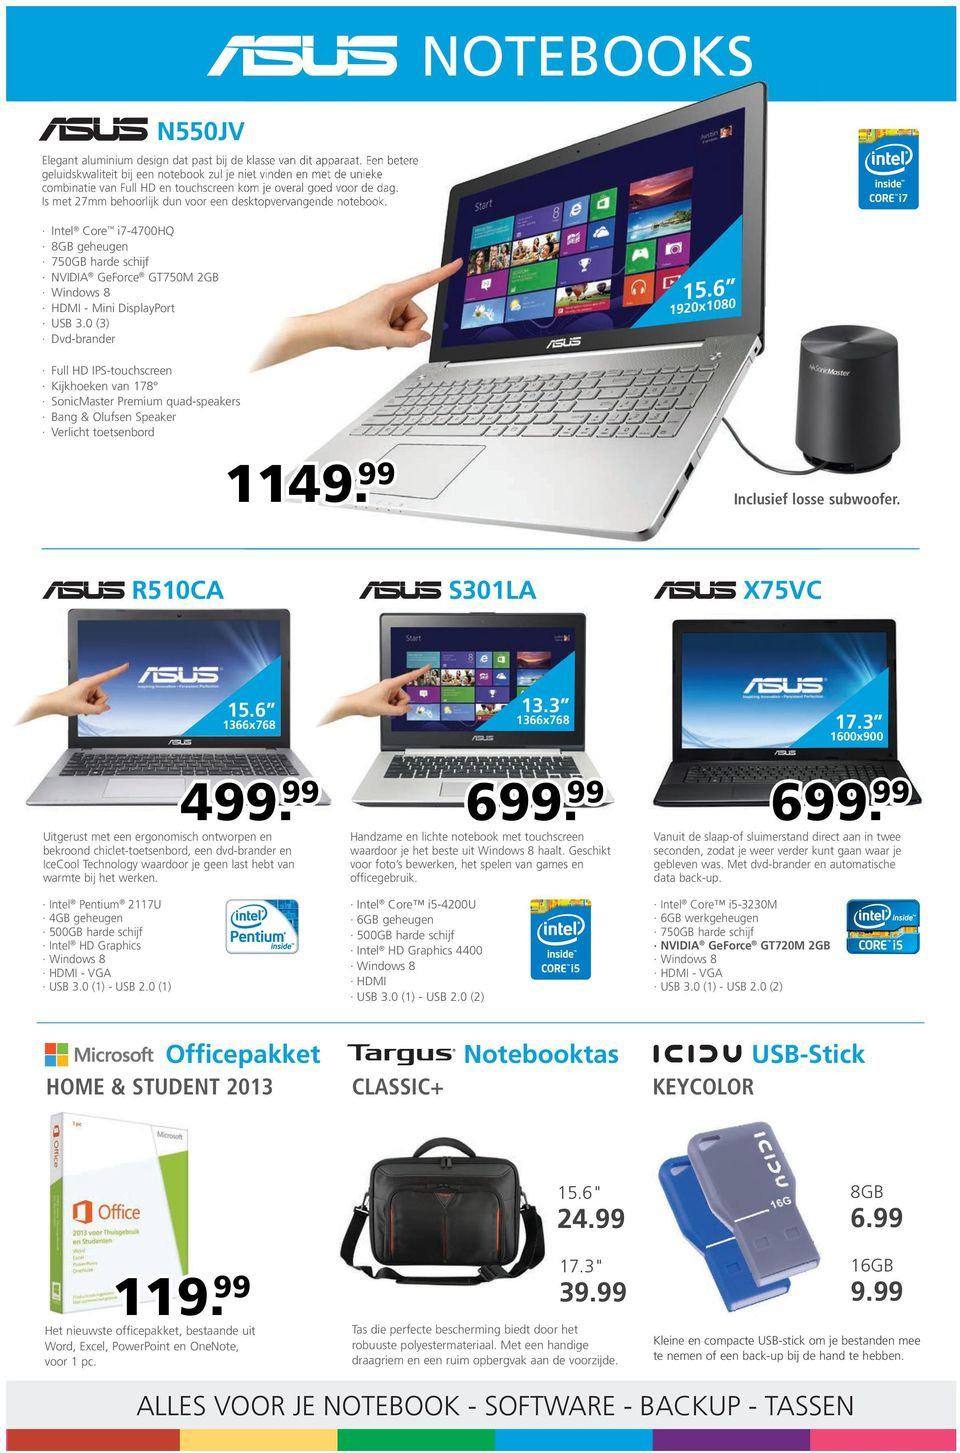 Is met 27mm behoorlijk dun voor een desktopvervangende notebook. Intel Core i7-4700hq 750GB harde schijf NVIDIA GeForce GT750M 2GB HDMI - Mini DisplayPort USB 3.